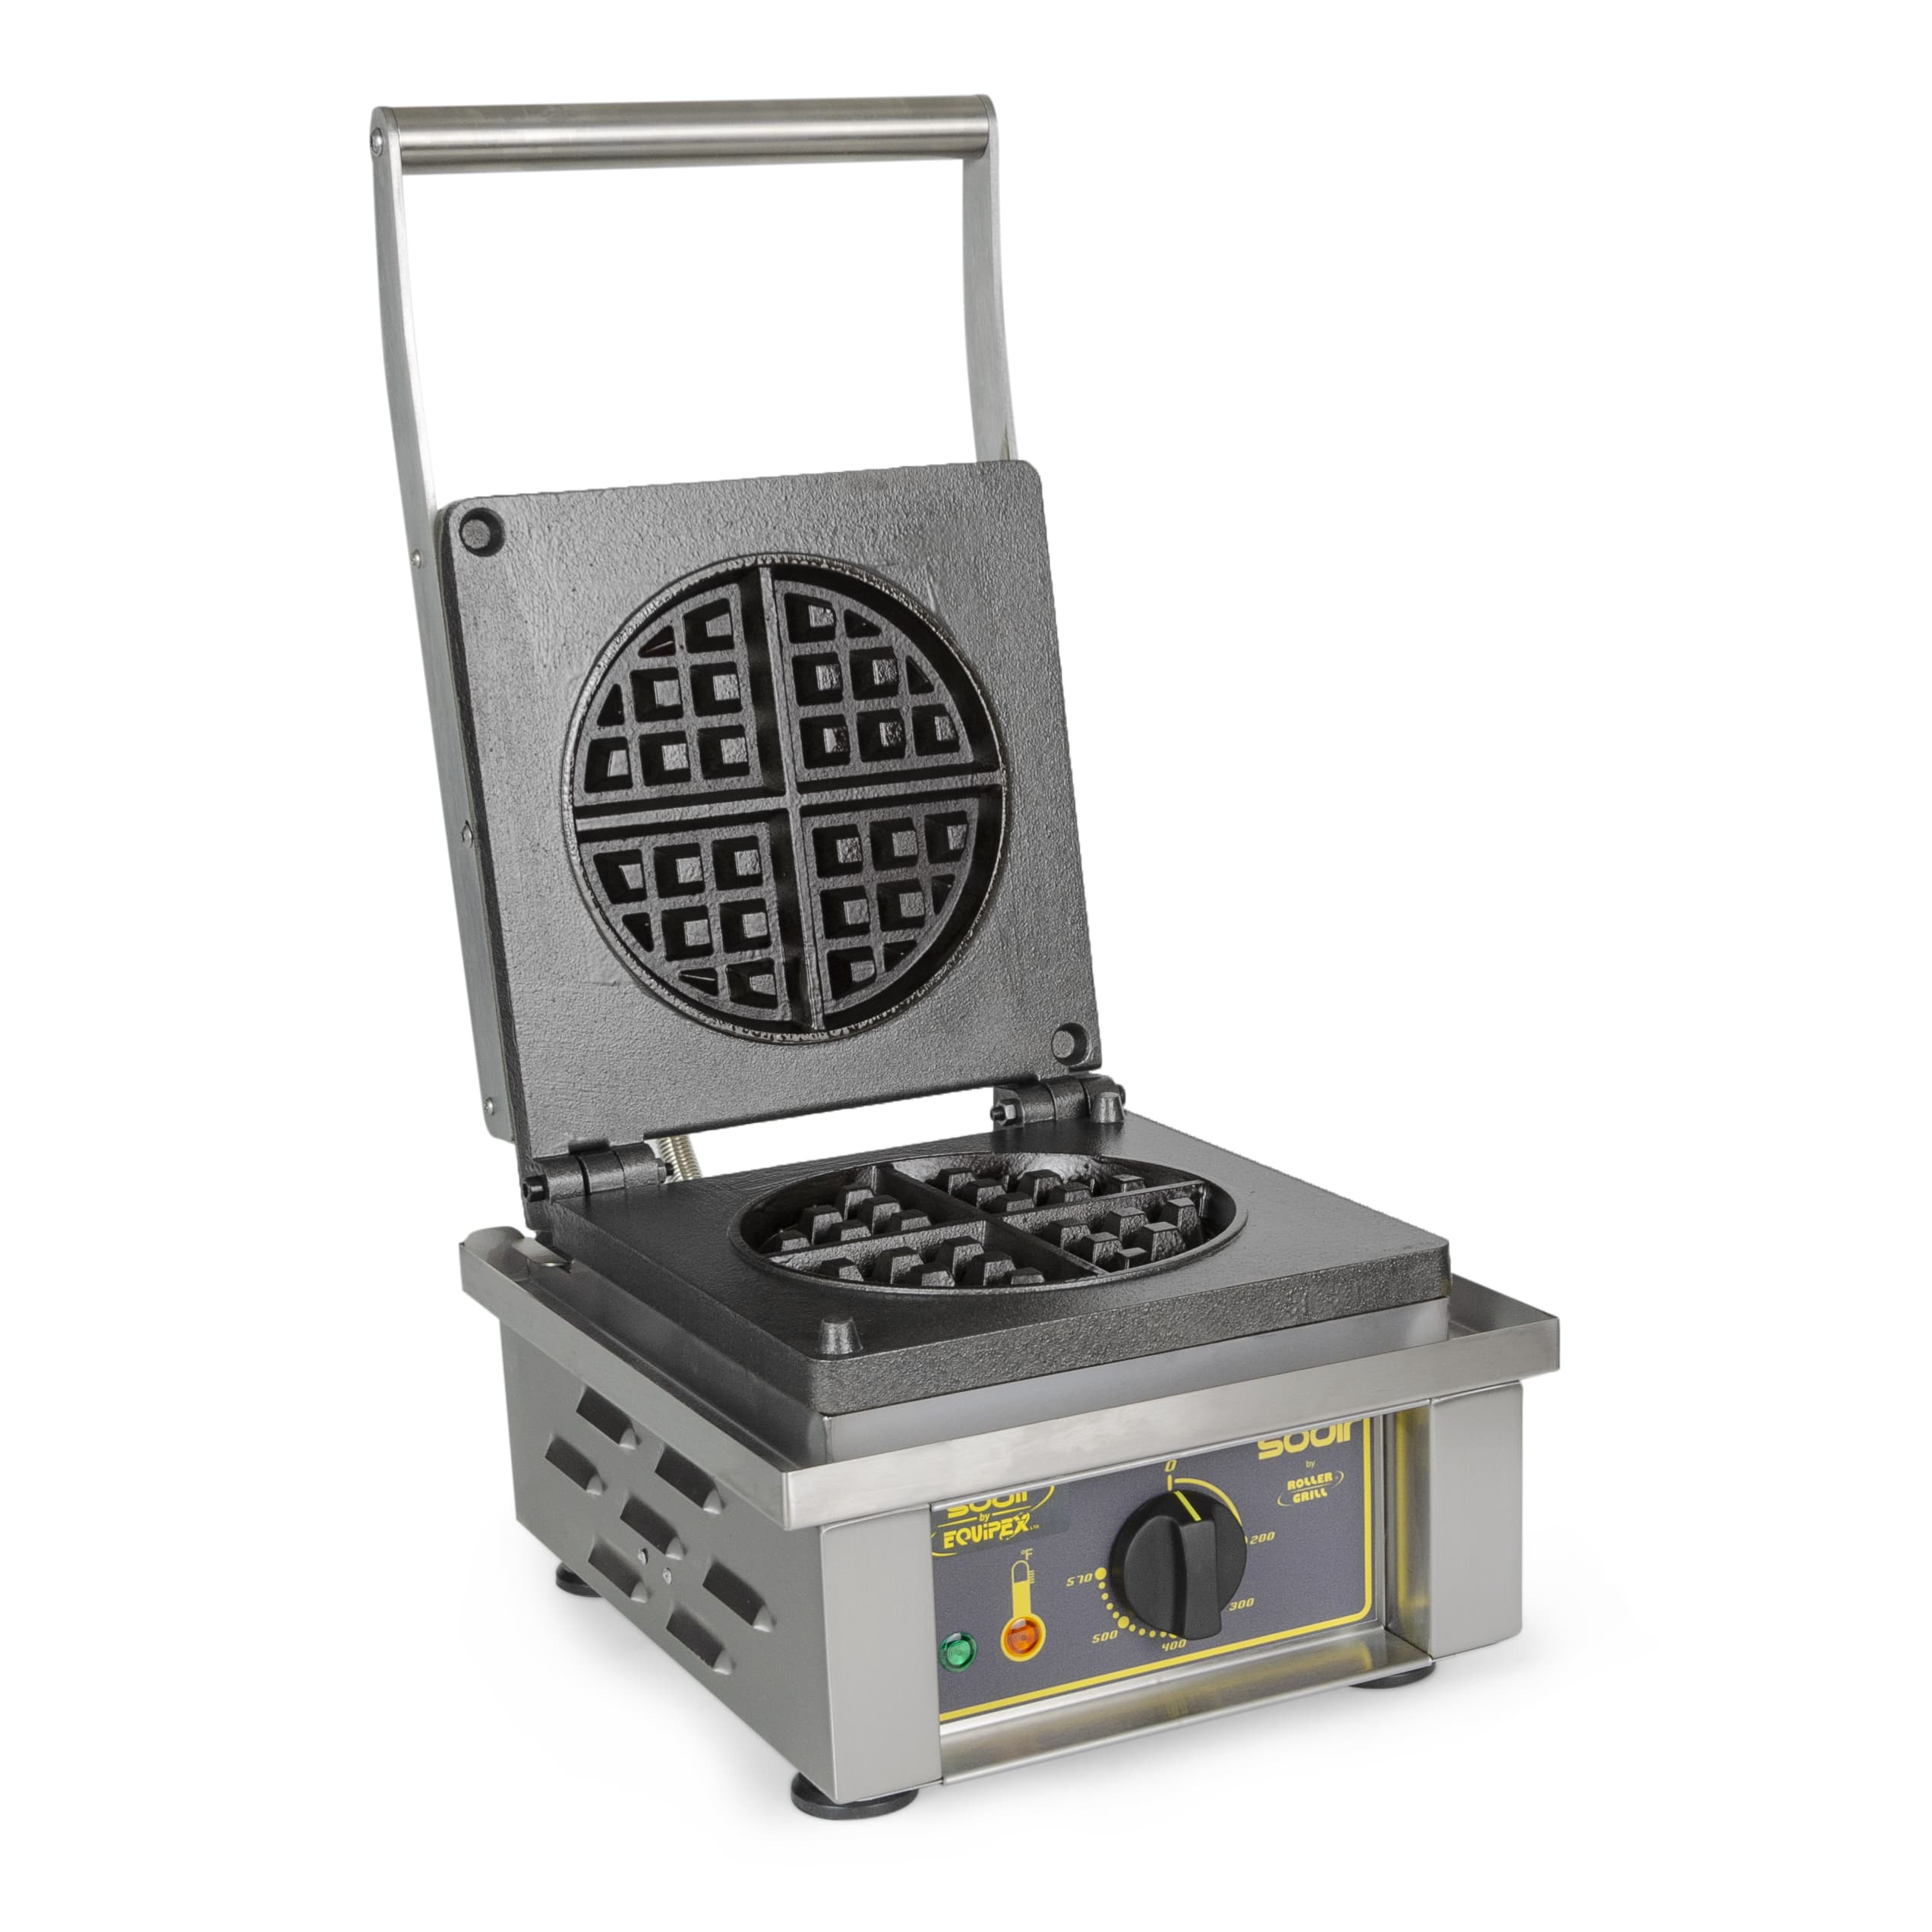 Equipex GES75/1 Single Classic Belgian Waffle Maker w/ Removable Cast Iron Grids, 1750W